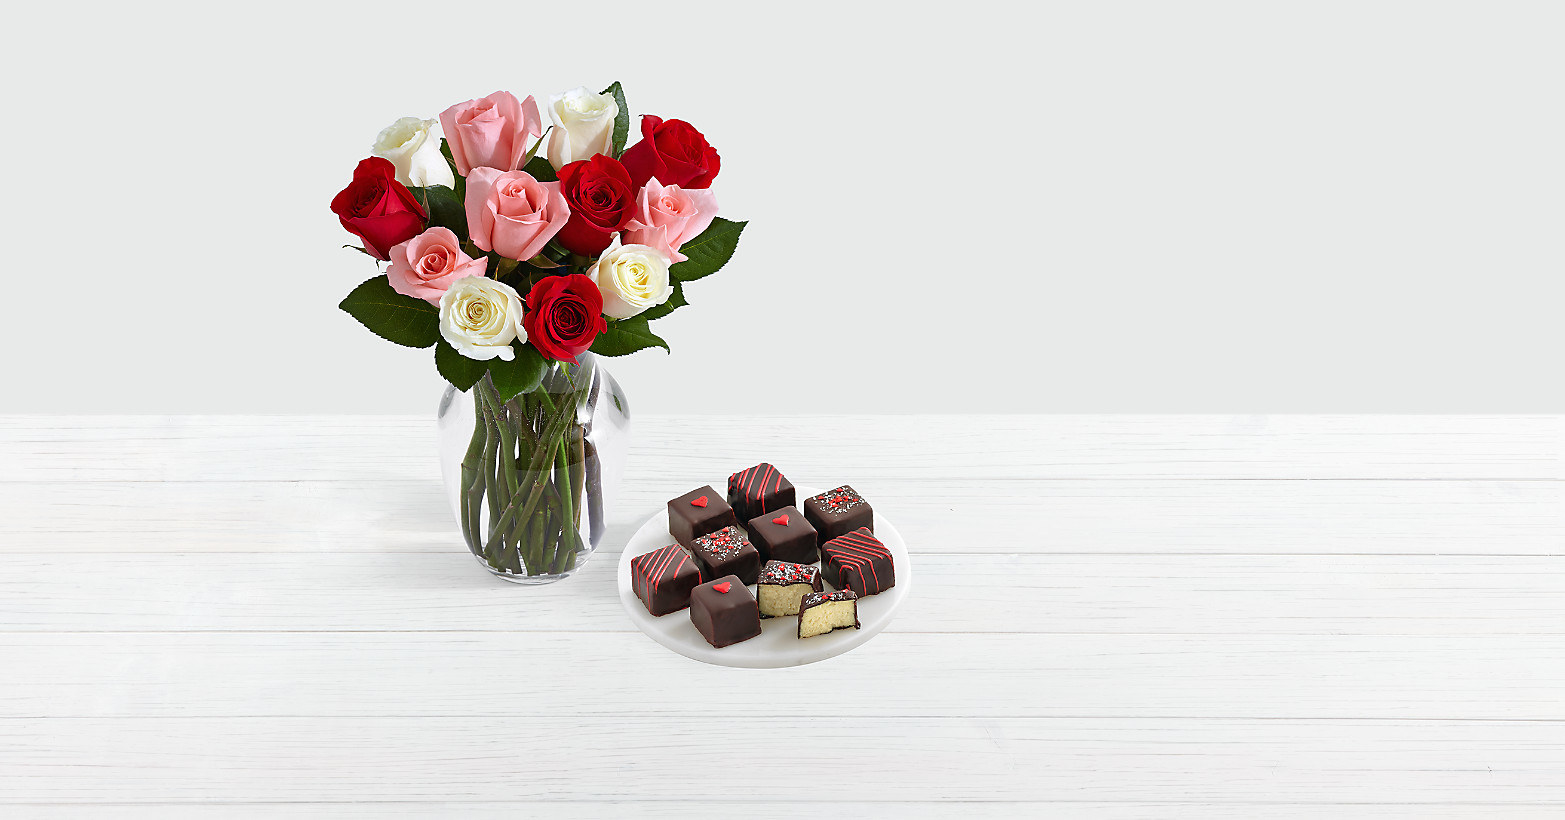 best place to order flowers online reviews uk